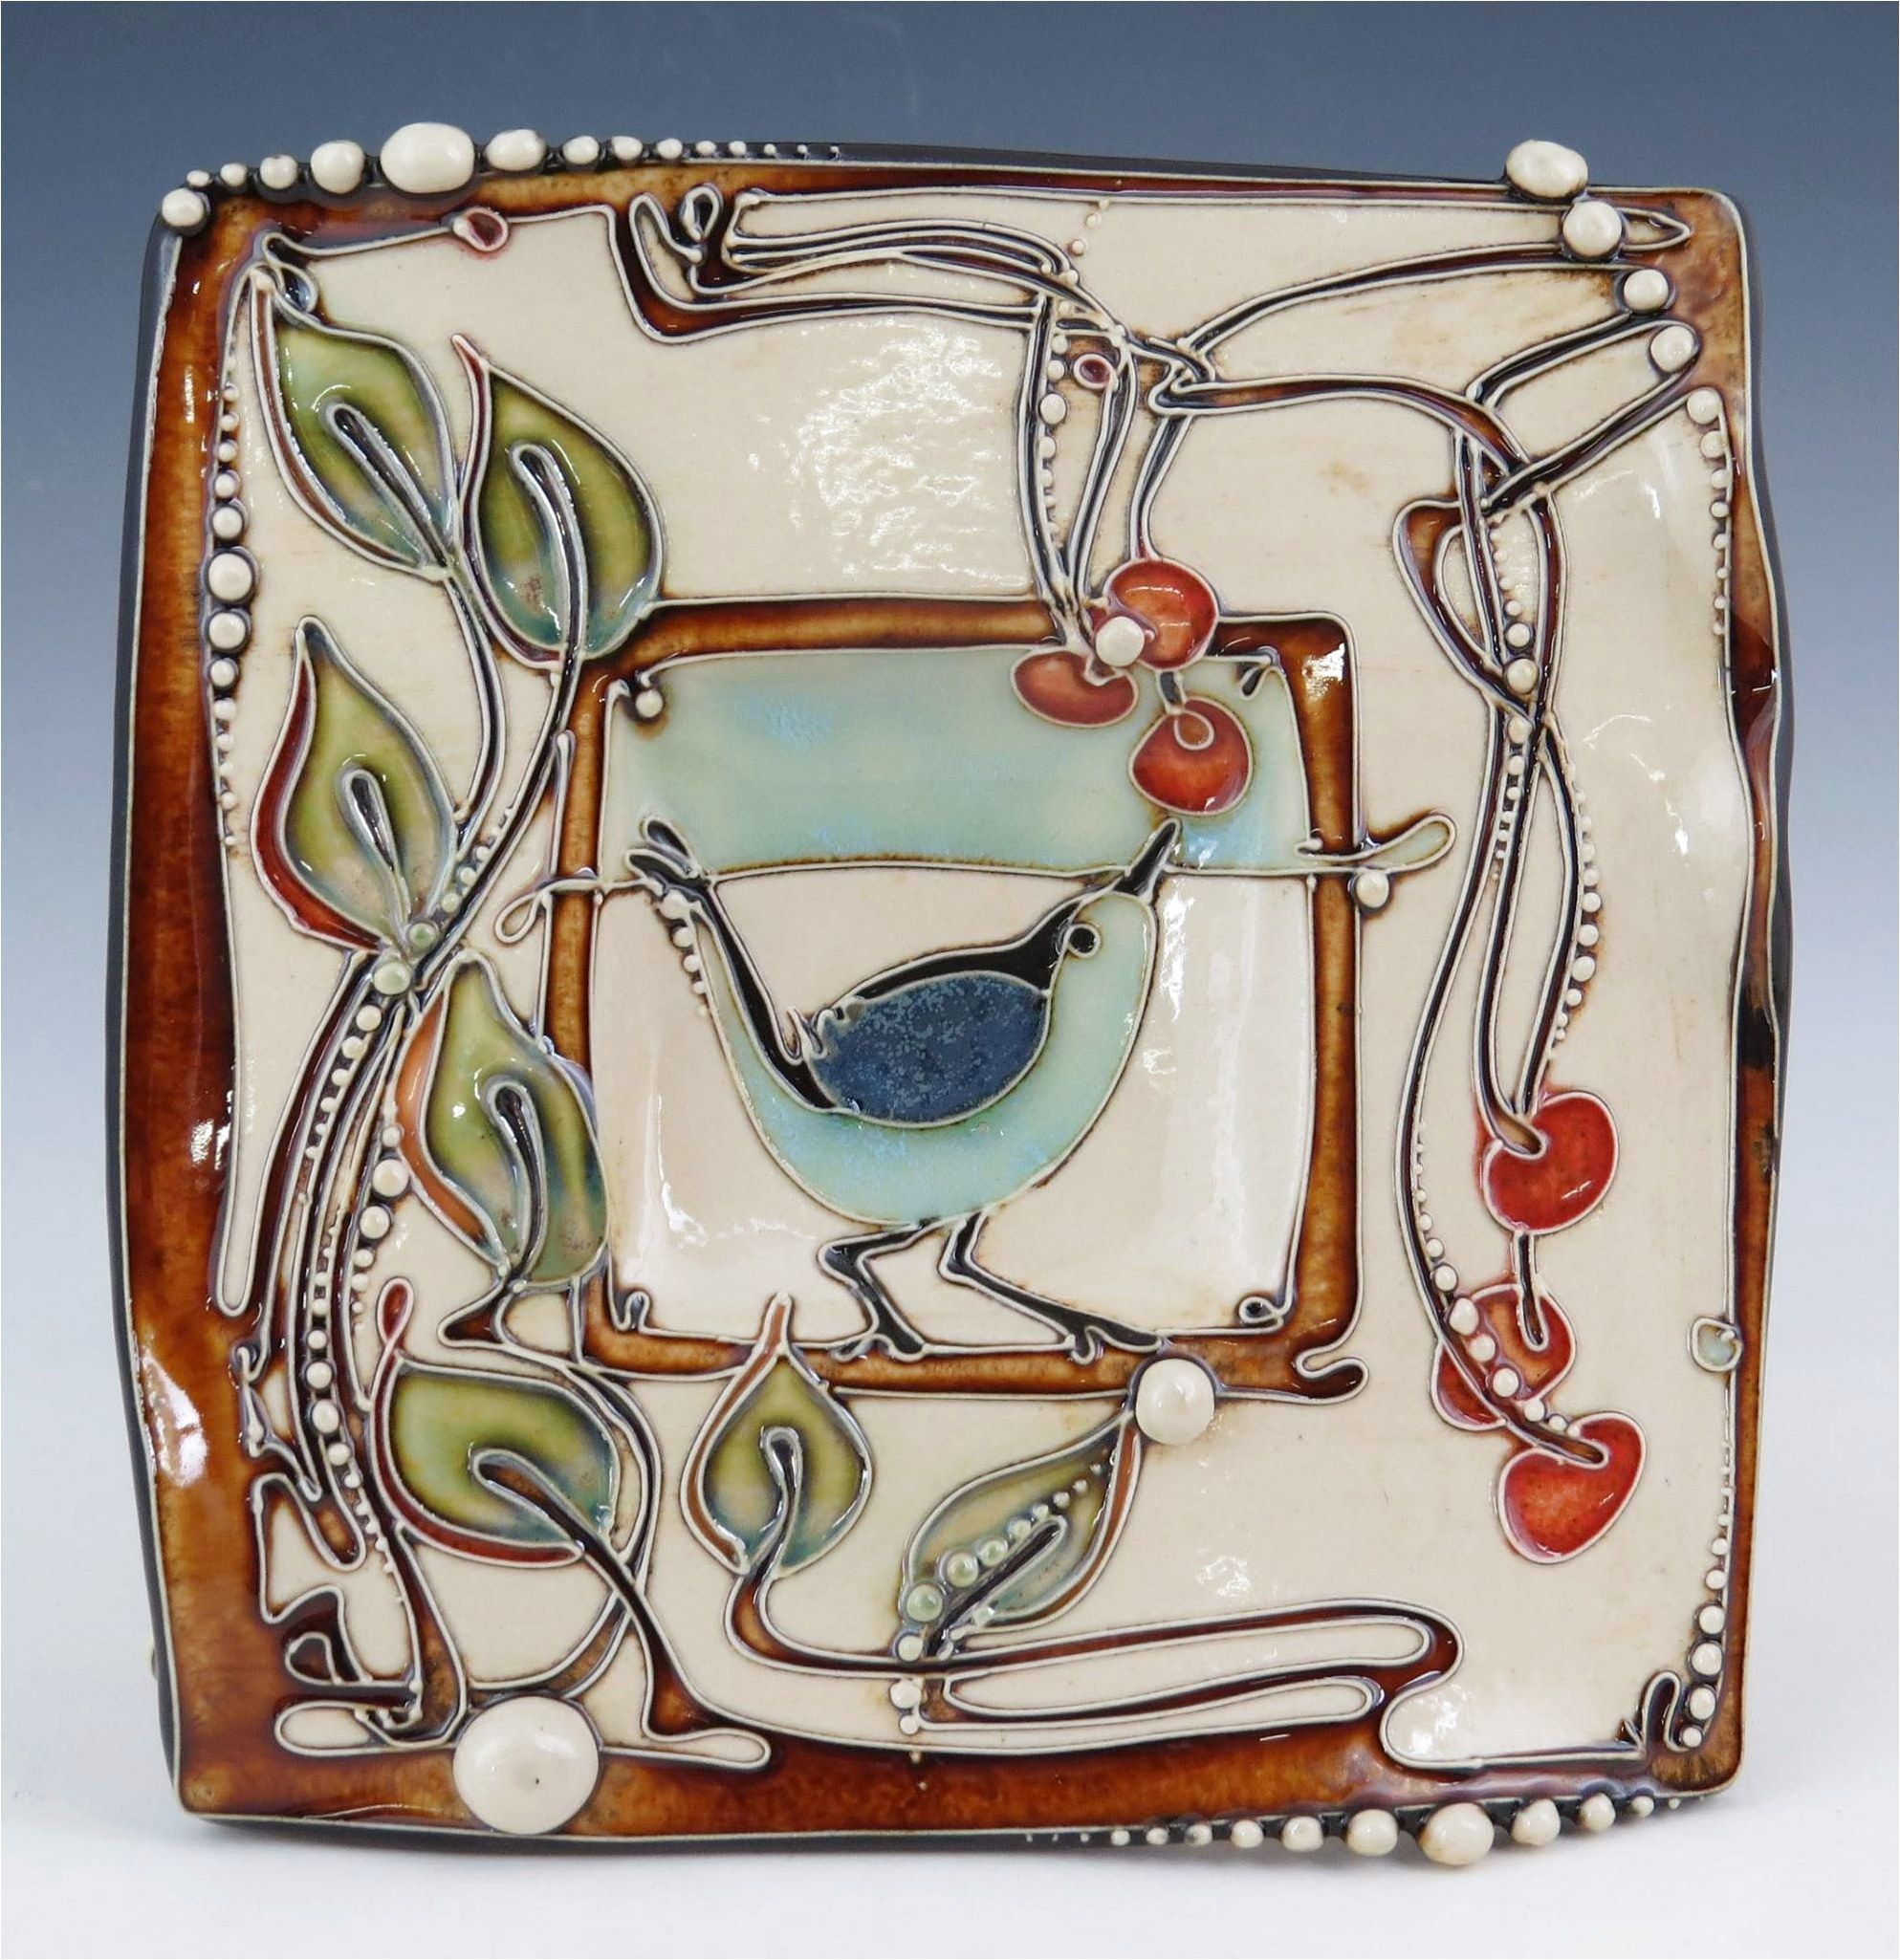 Potteryandceramics If You Admire This Image And Want To See More Click For Link Tile Art Art Deco Tiles Ceramic Artwork